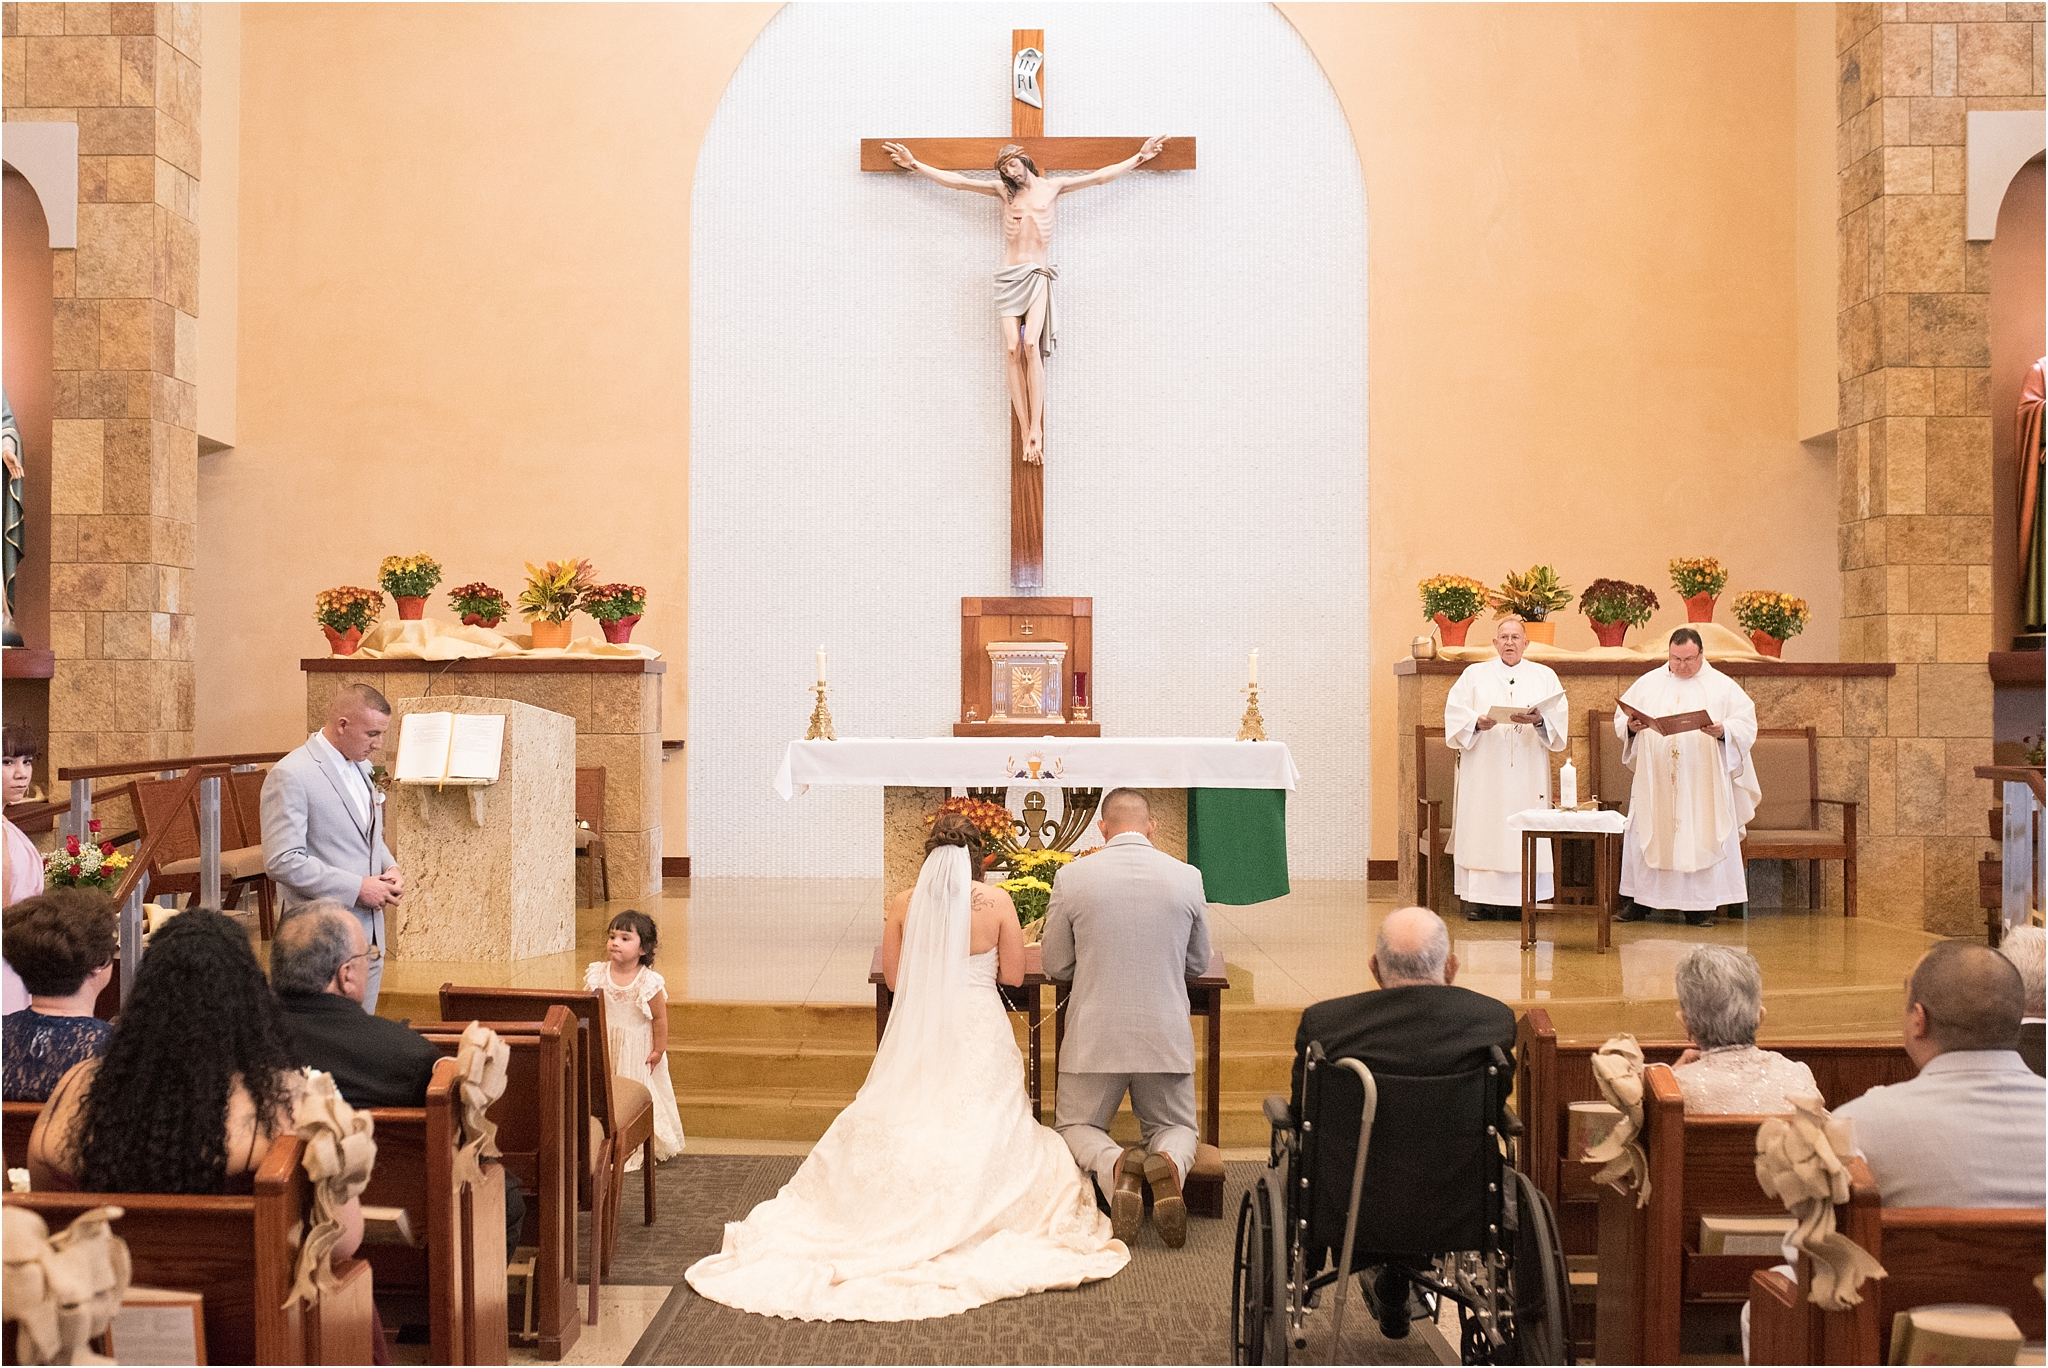 kayla kitts photography - albuquerque wedding photographer - hairpins and scissors - a cake odyssey - new mexico wedding photographer_0038.jpg